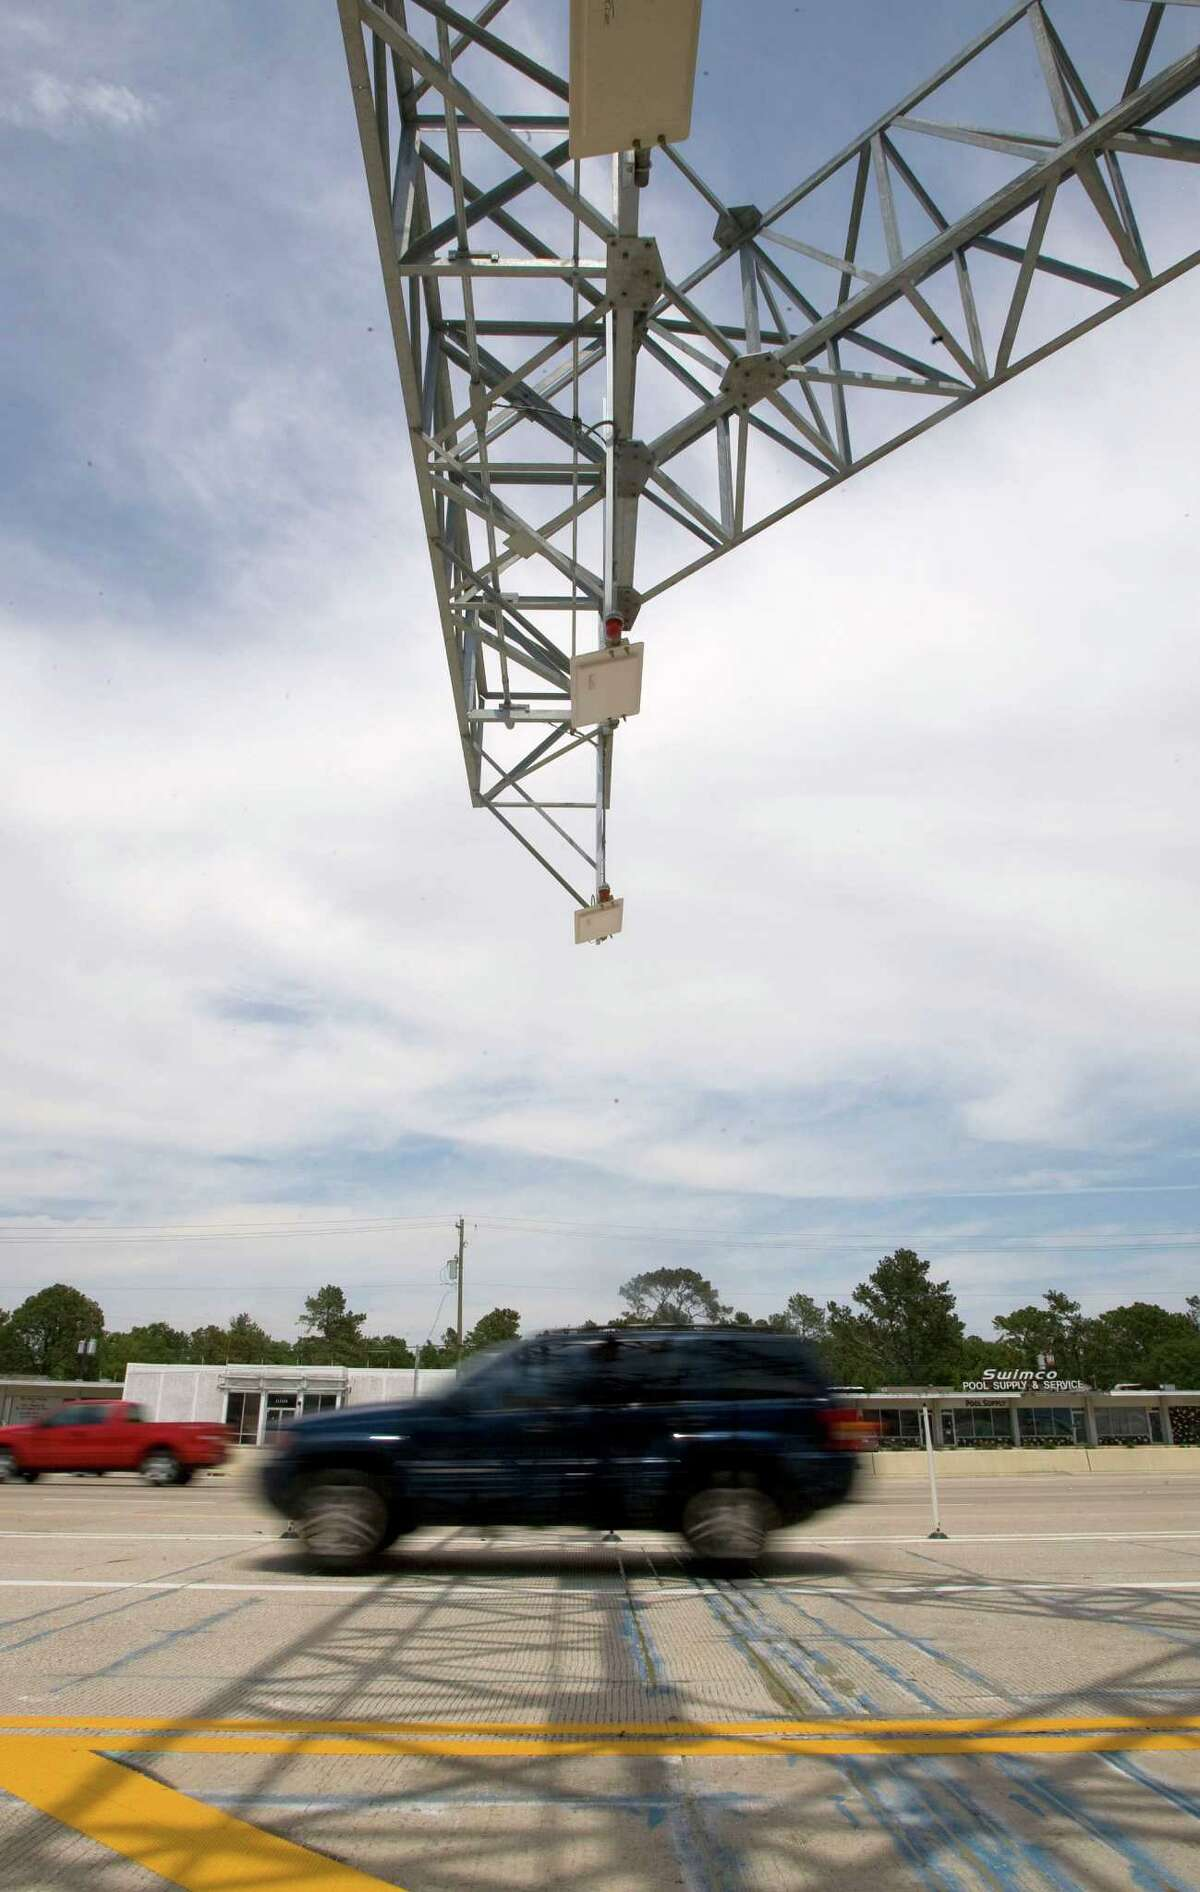 A vehicle passes through an electronic toll collection point during a media tour of the Katy Managed Lanes on April 15, 2009.